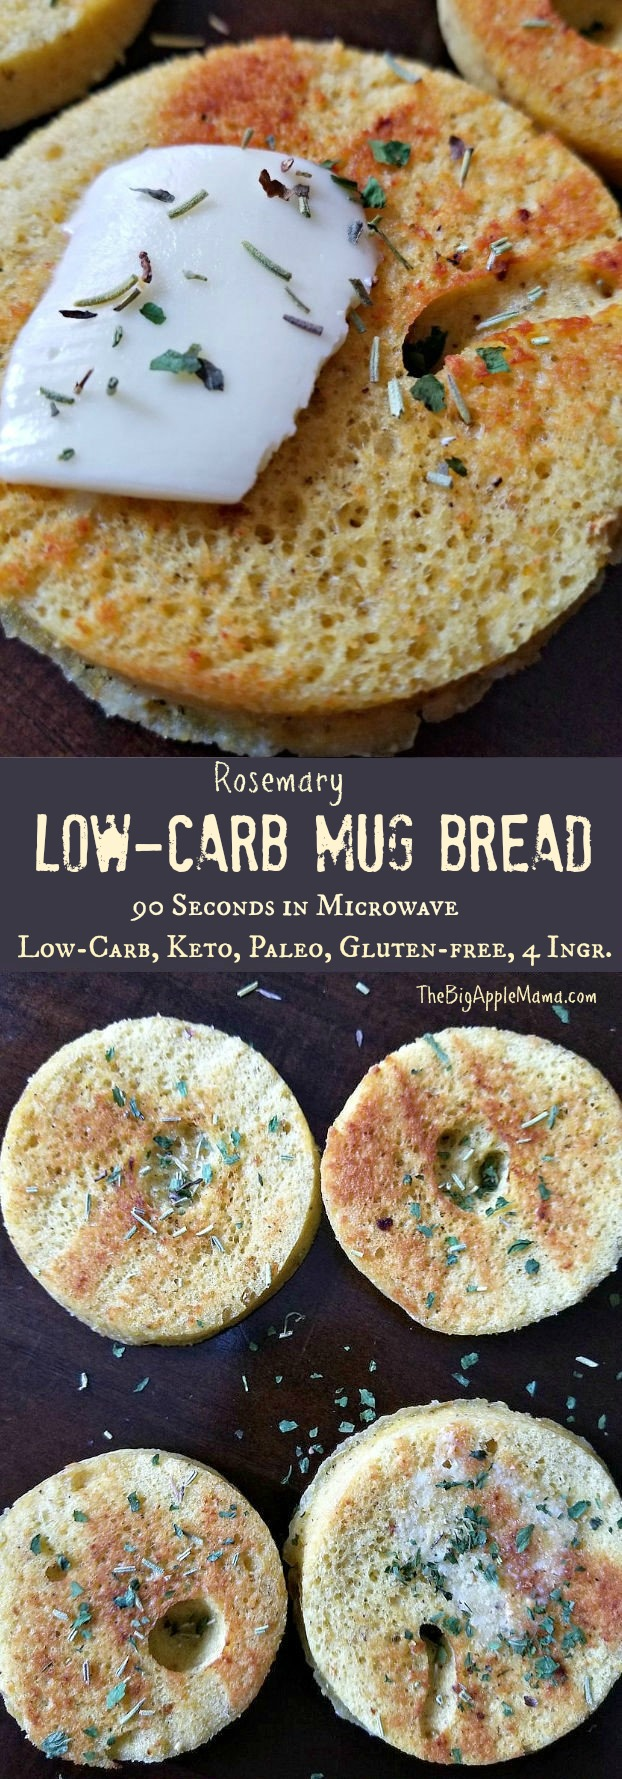 Best Low Carb Keto Mug Bread, 90 Seconds in Microwave